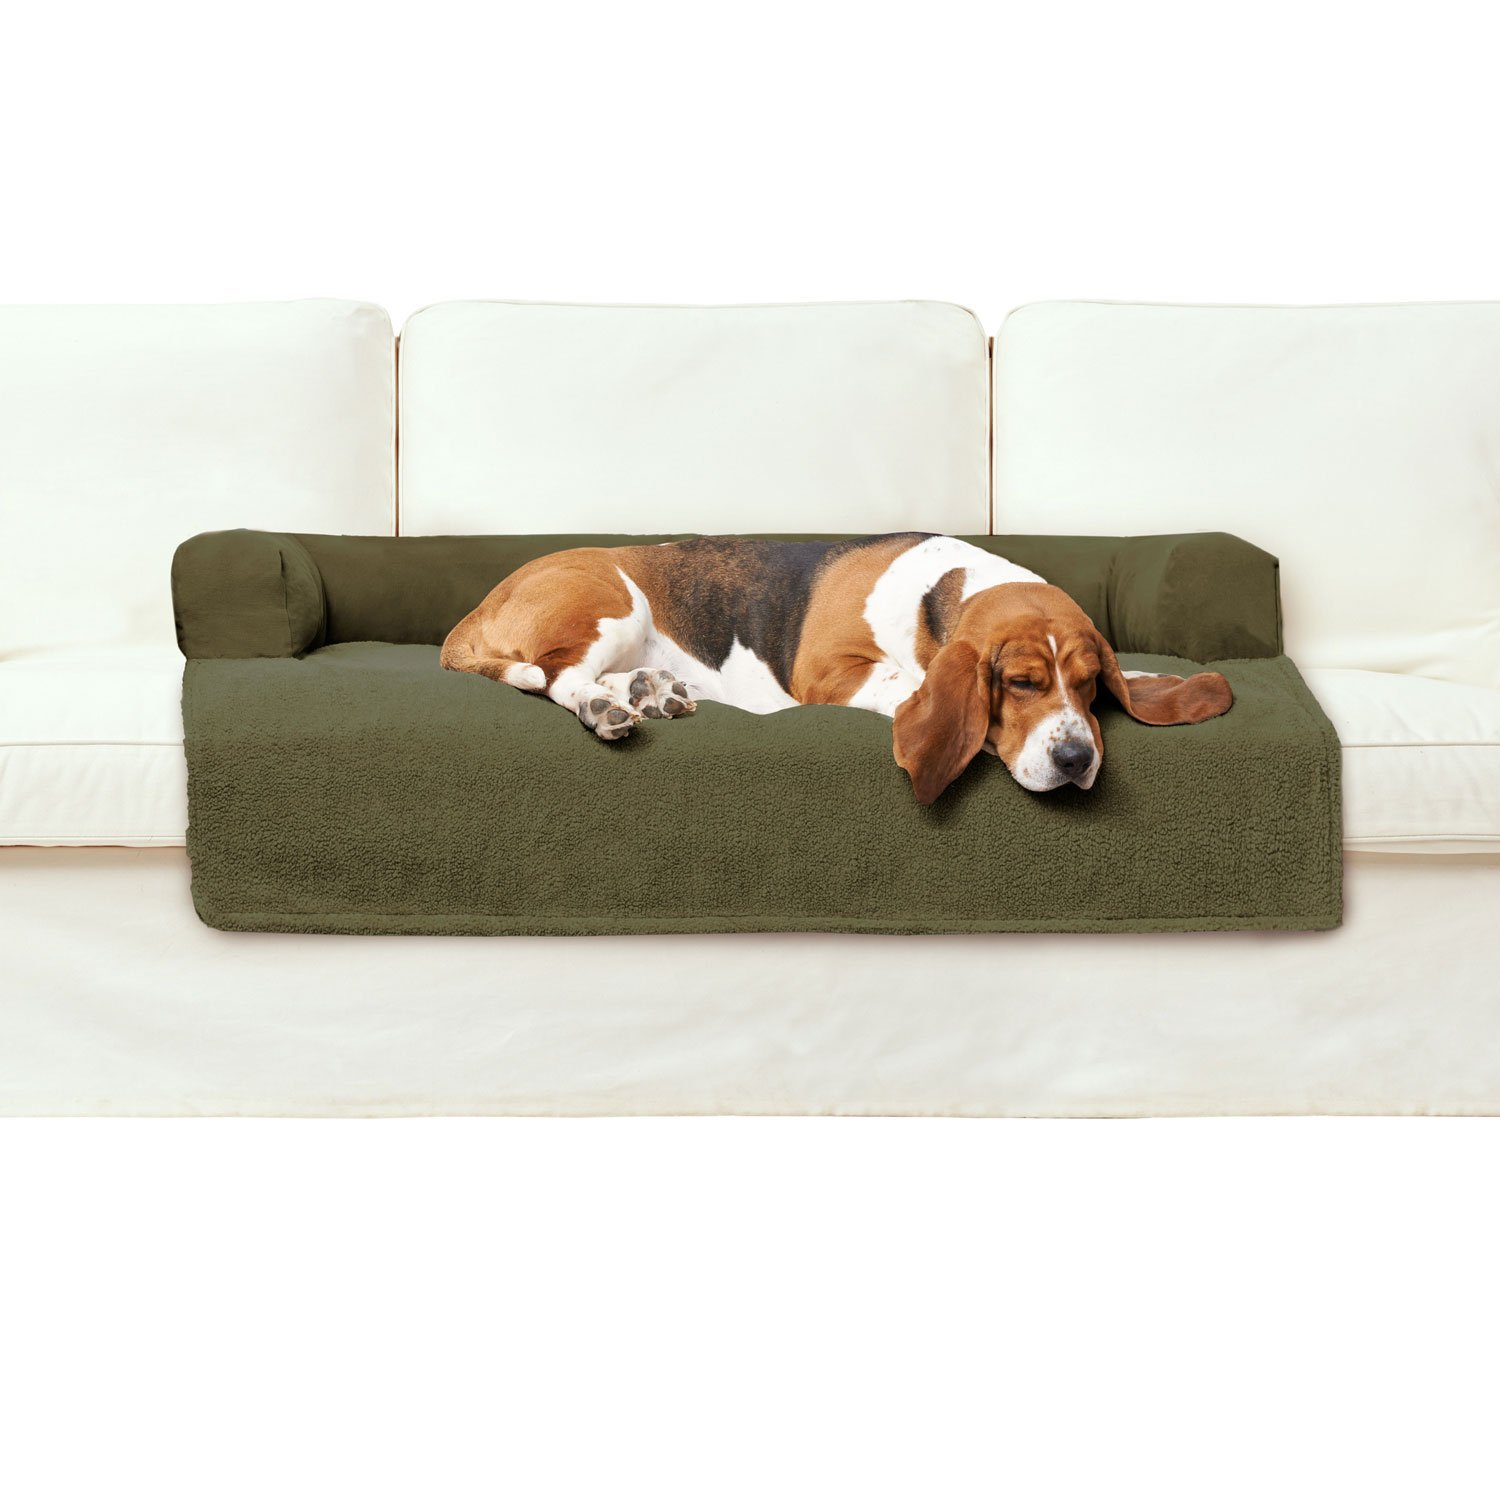 Amazon : PawTex Premium Couch Cover Dog Bed, 50 Inch, X-Large/Jumbo,  Tan : Pet Care Products : Pet Supplies